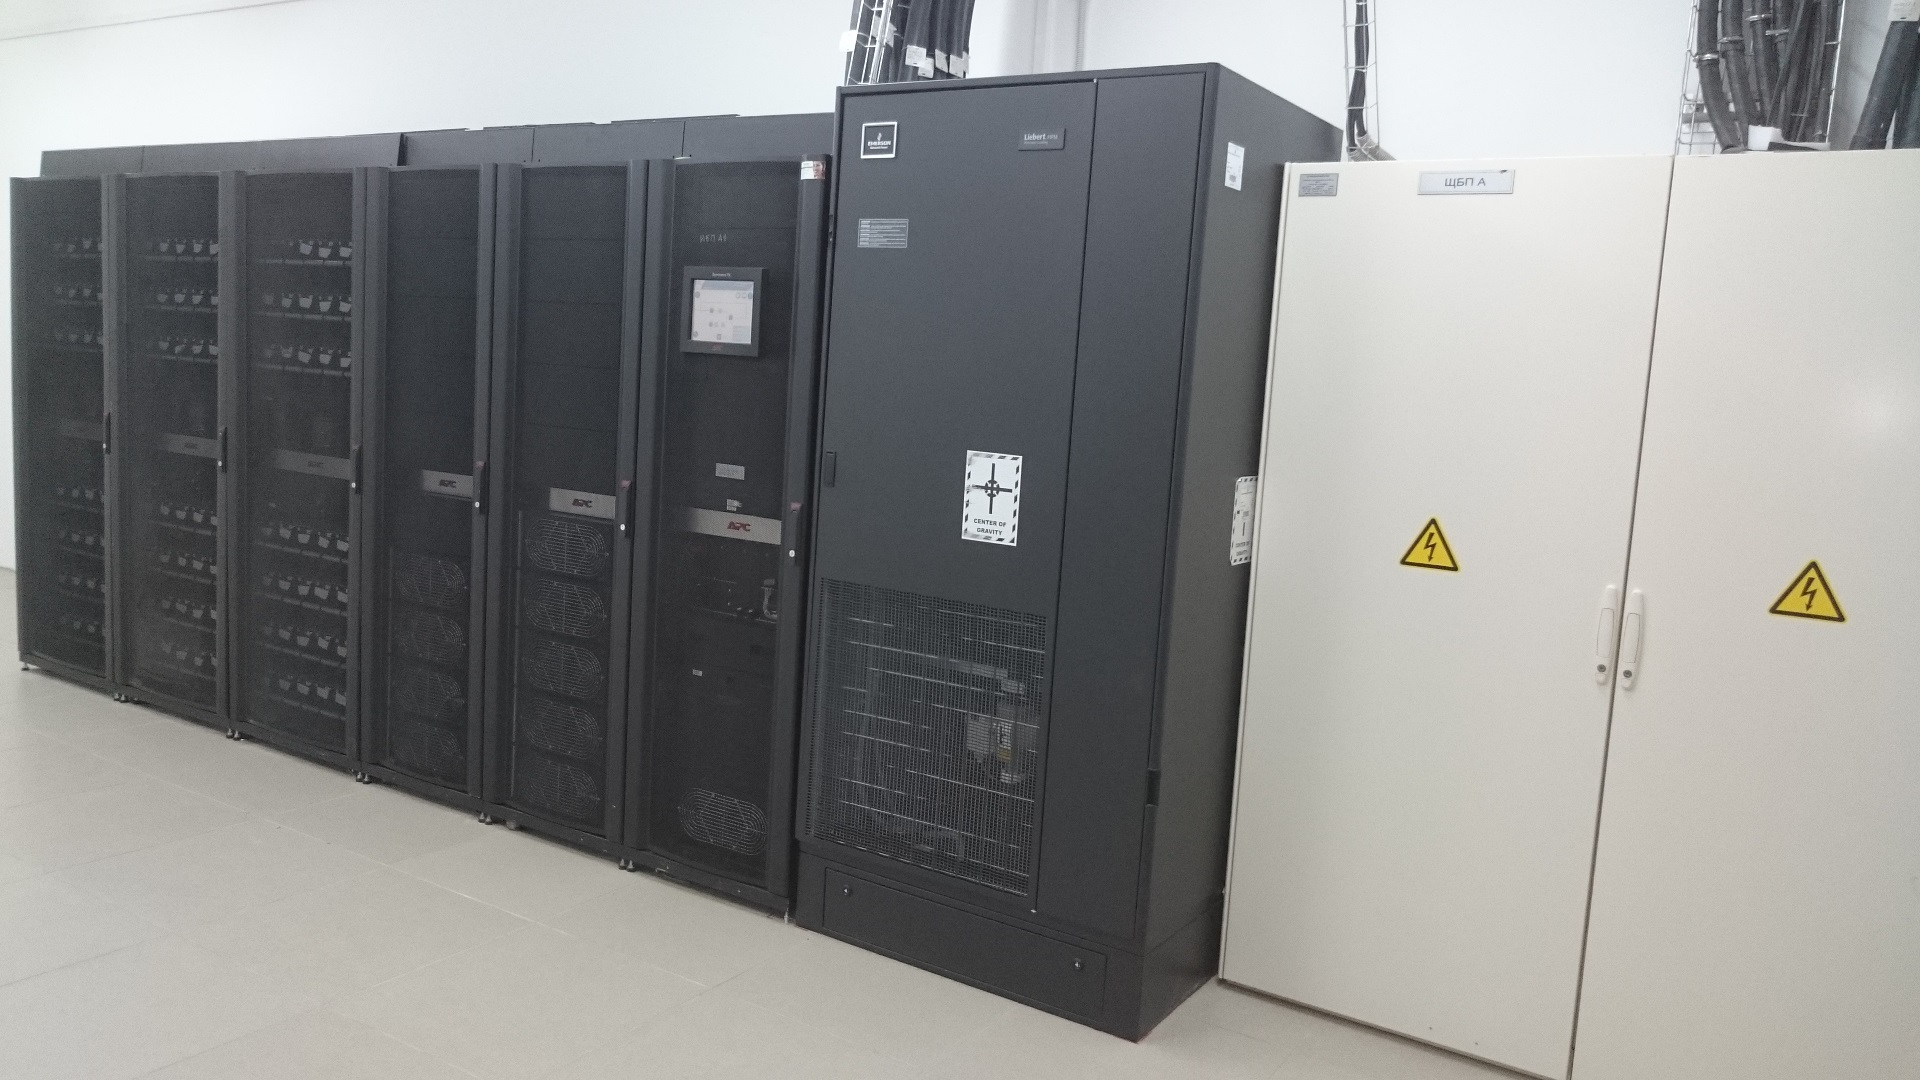 ИБП Symmetra Odin, APC by Schneider Electric